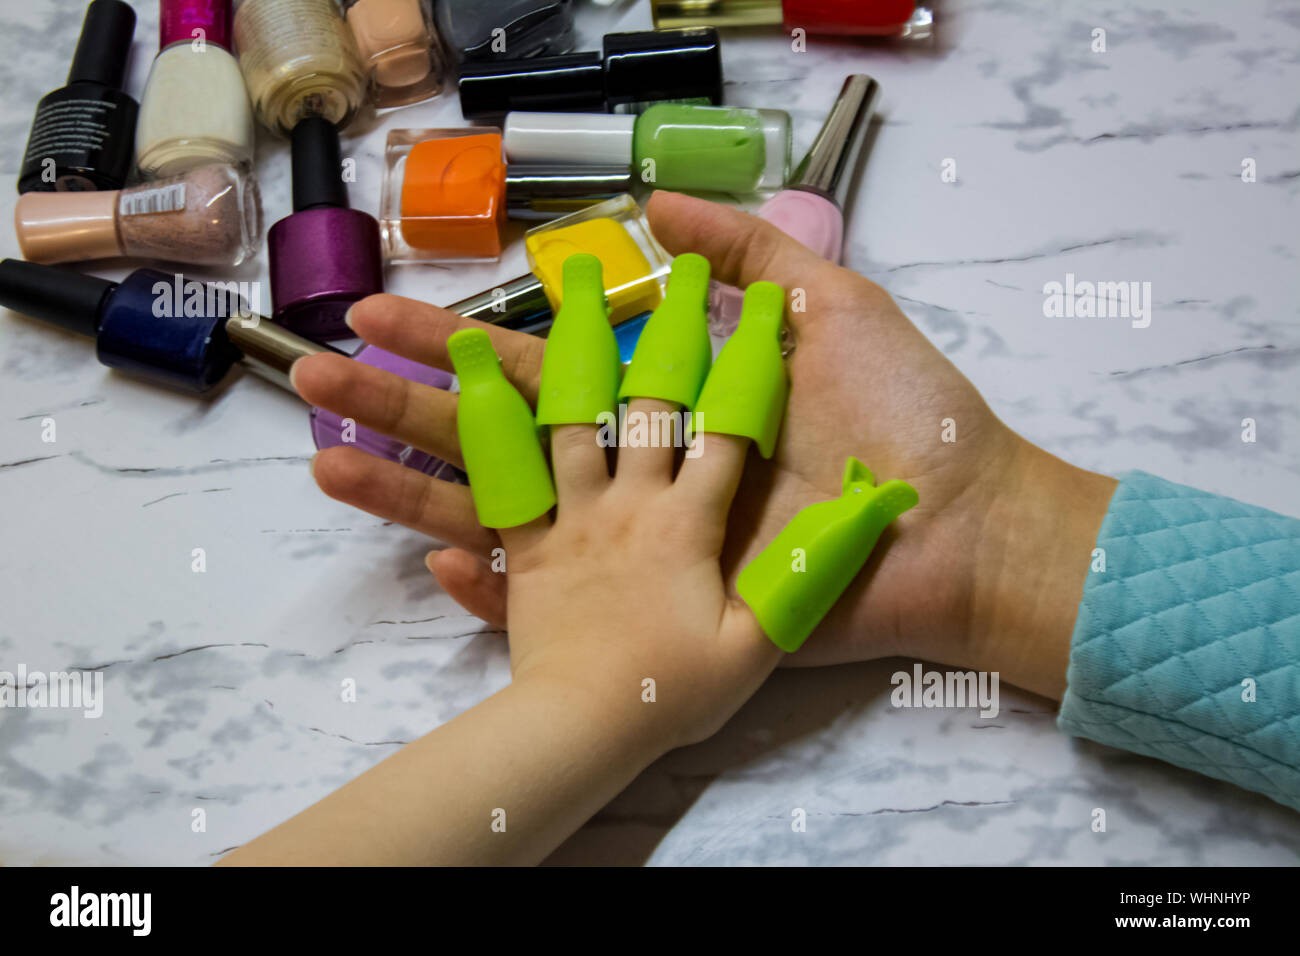 Children S Manicure Children S Beauty Salon Paint Your Child S Nails With Nail Polish Nail Polish Remover Clips On The Girl S Fingers Stock Photo Alamy